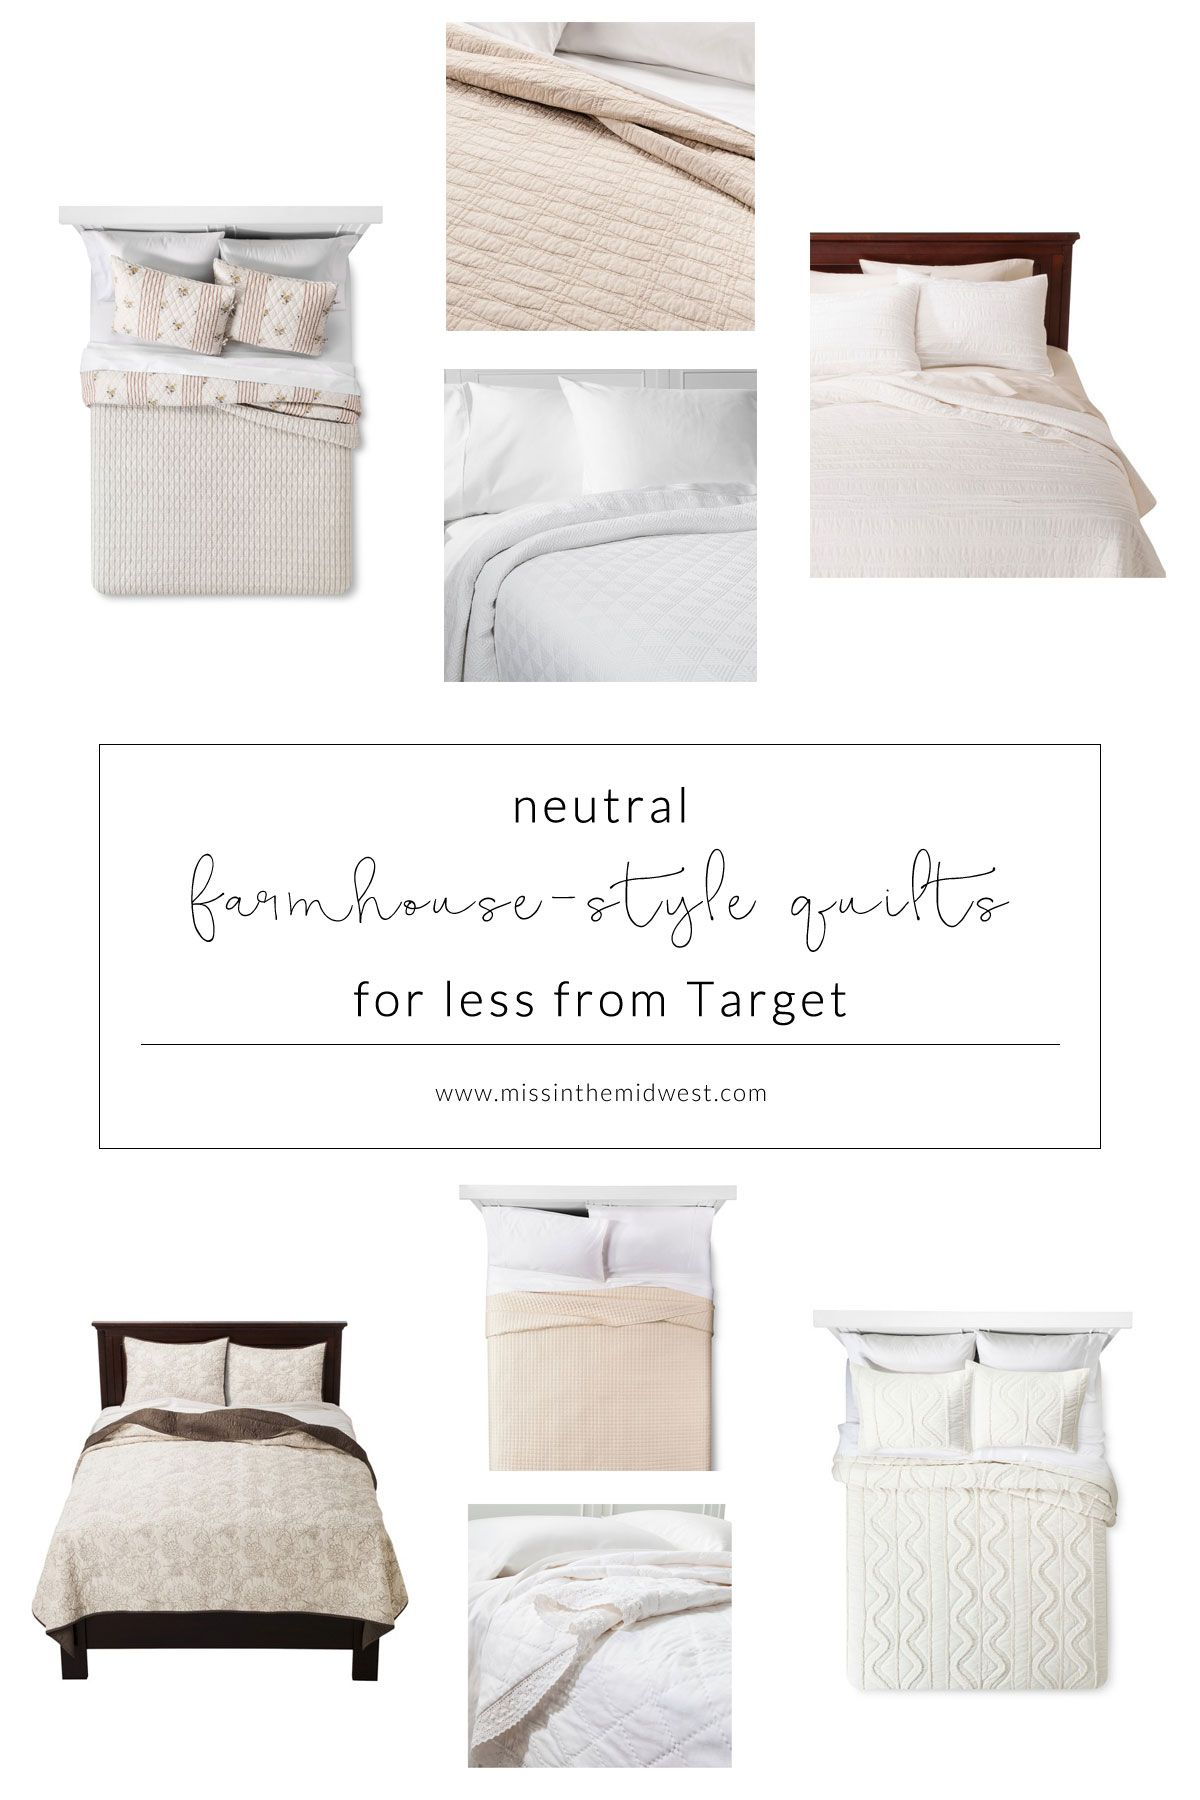 8 neutral farmhousestyle quilts for less from target